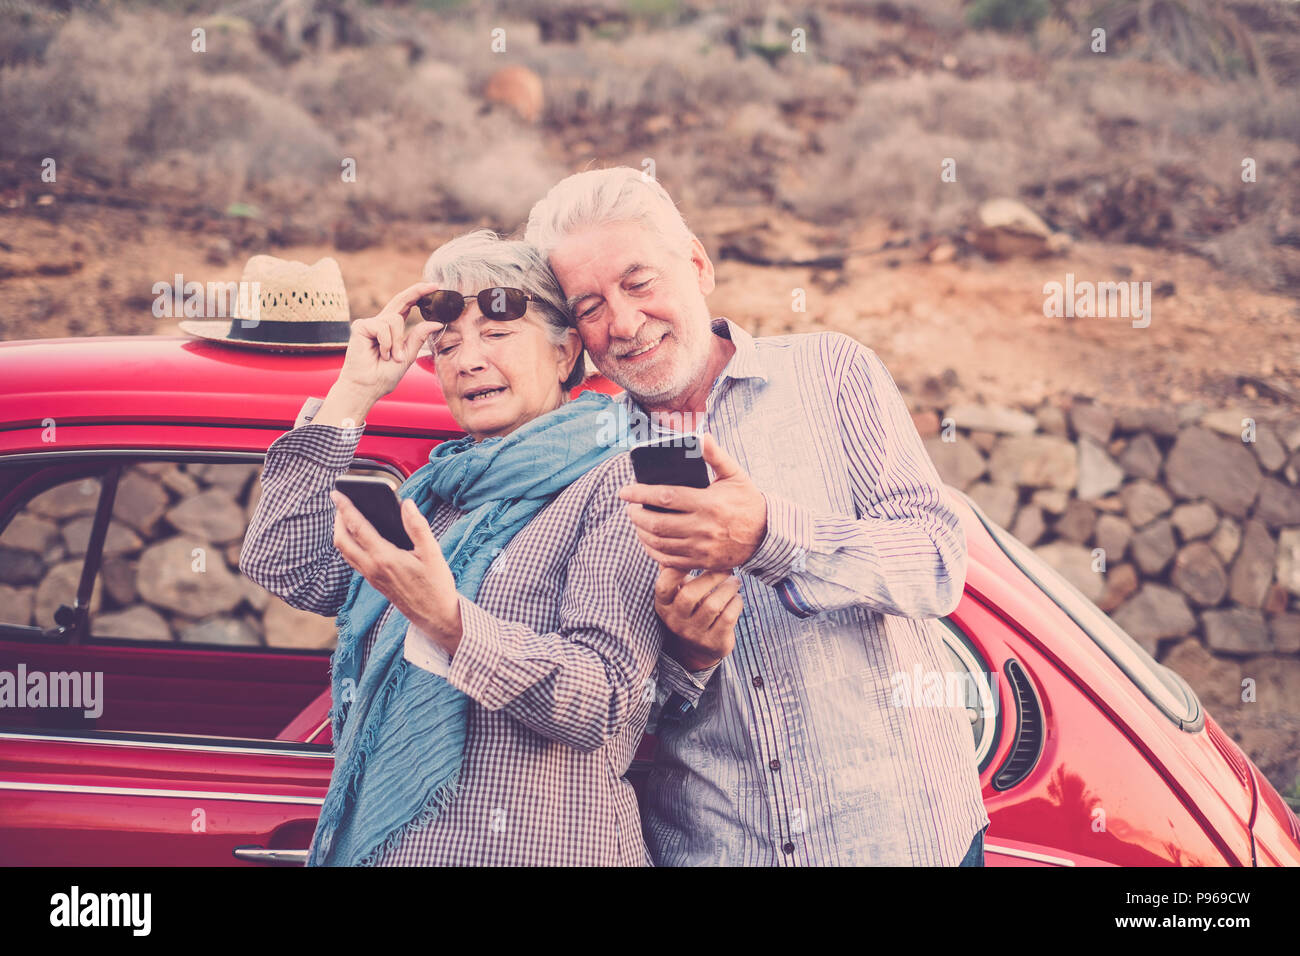 senior adult couple check and look mobile phones to connect with internet or take a photo selfie. vintage red car ready to travel and everywhere in th - Stock Image